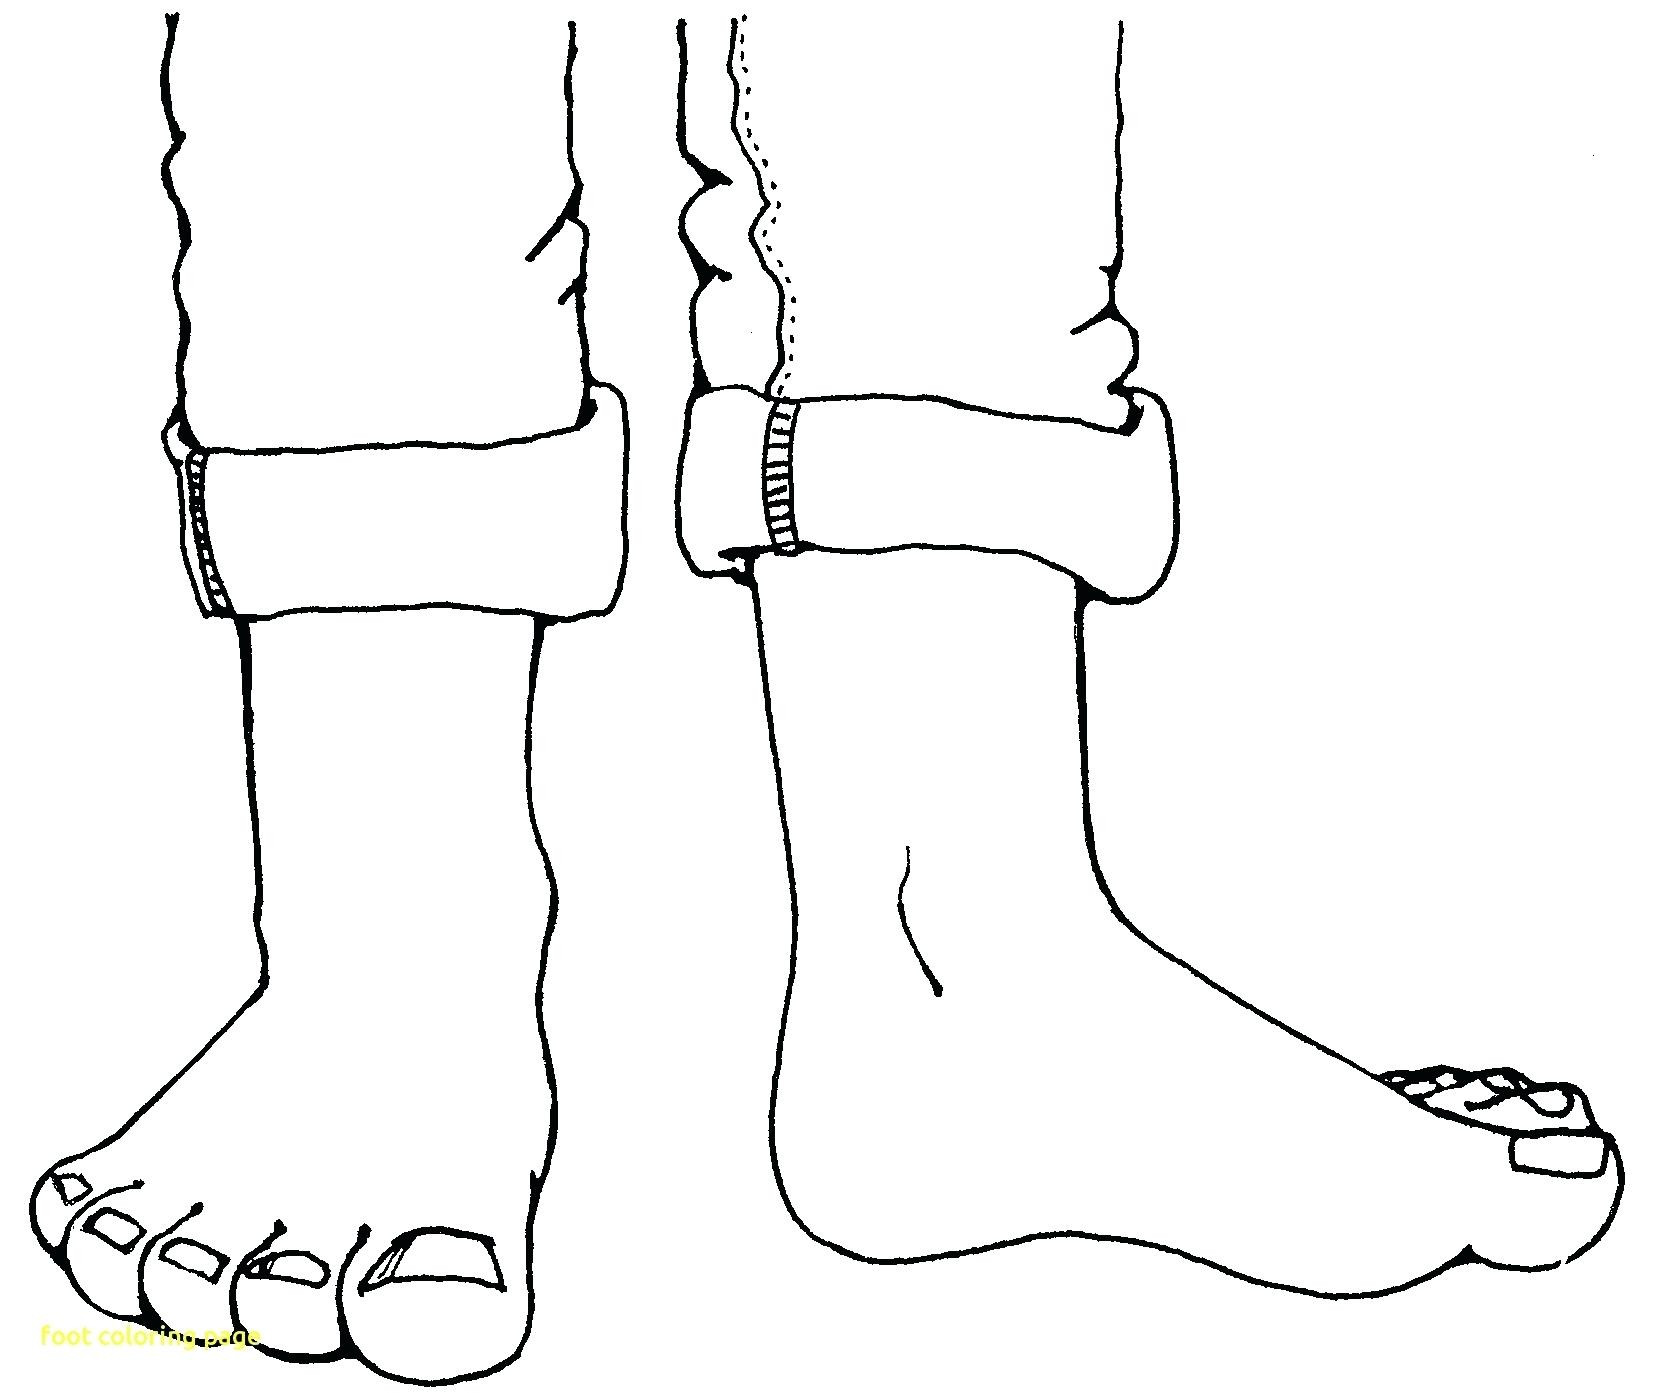 Feet clipart one foot. Coloring pages jesus washing